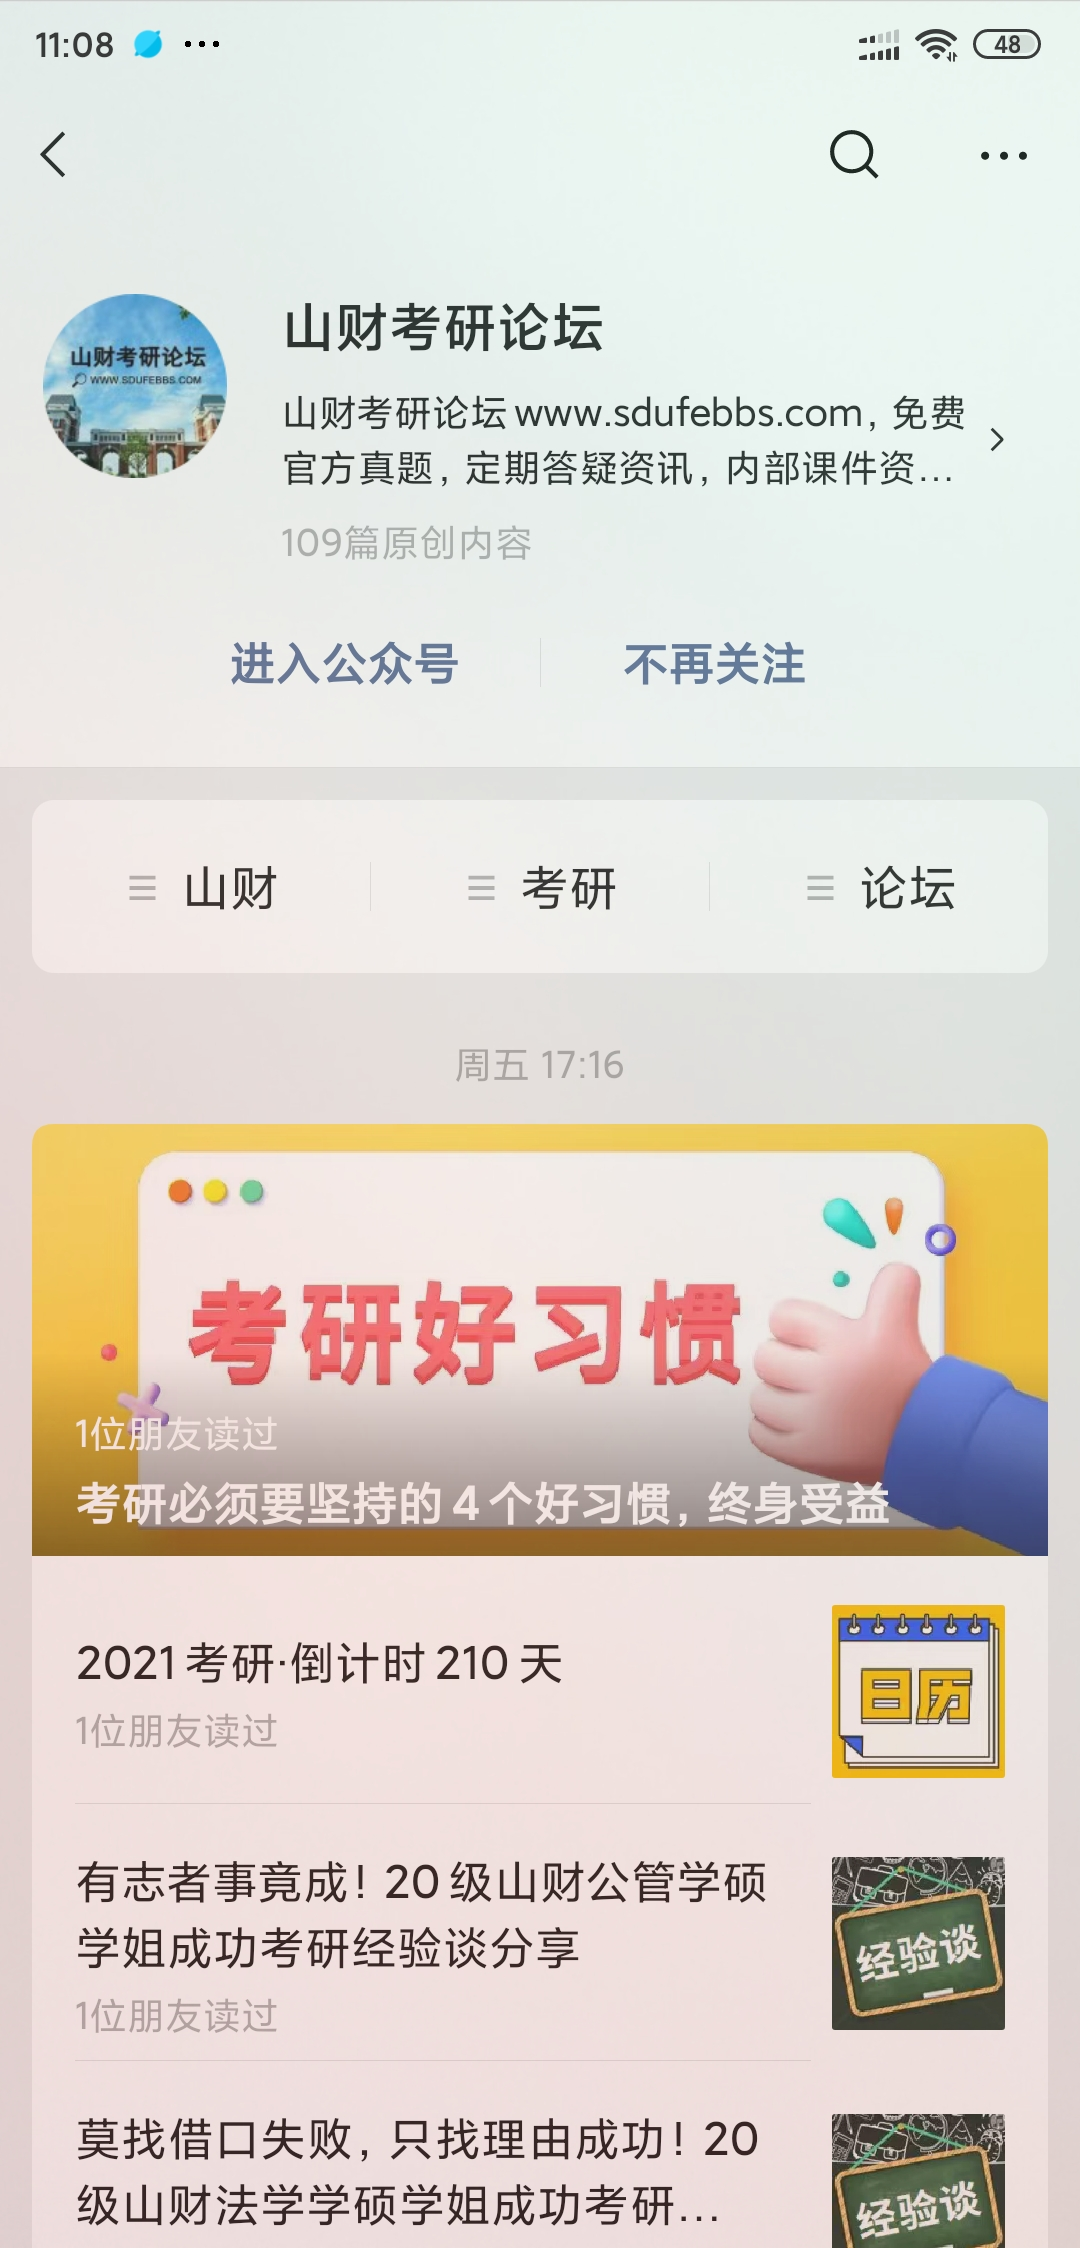 Screenshot_2020-05-24-11-08-47-295_com.tencent.mm.jpg